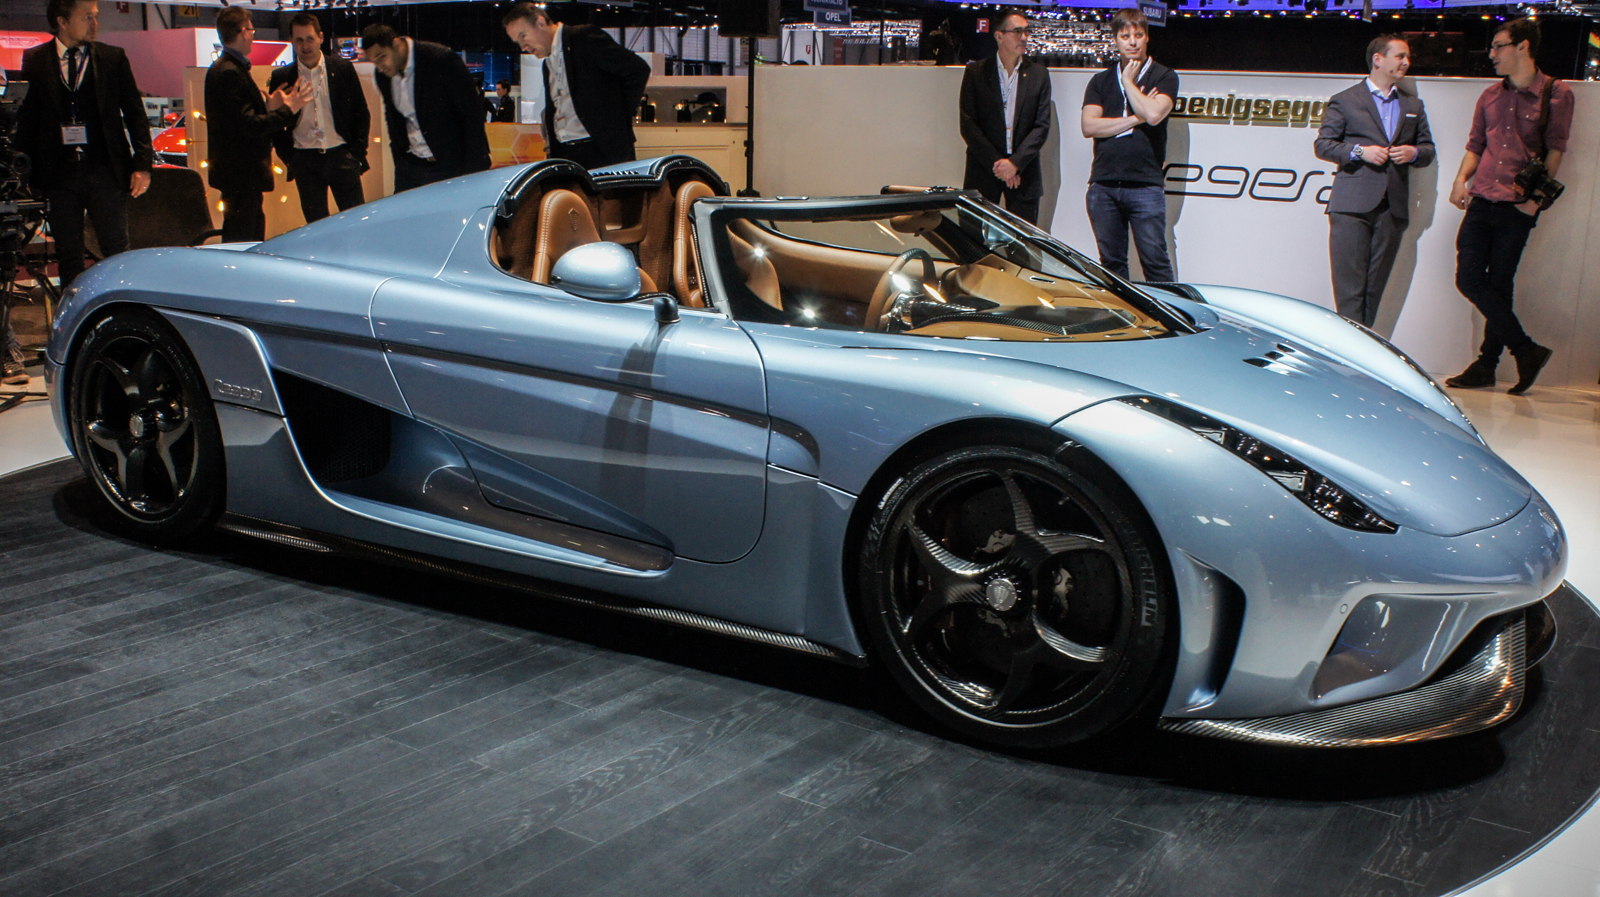 koenigsegg regera leaked 1500hp 0 248mph in under 20 seconds collective car. Black Bedroom Furniture Sets. Home Design Ideas